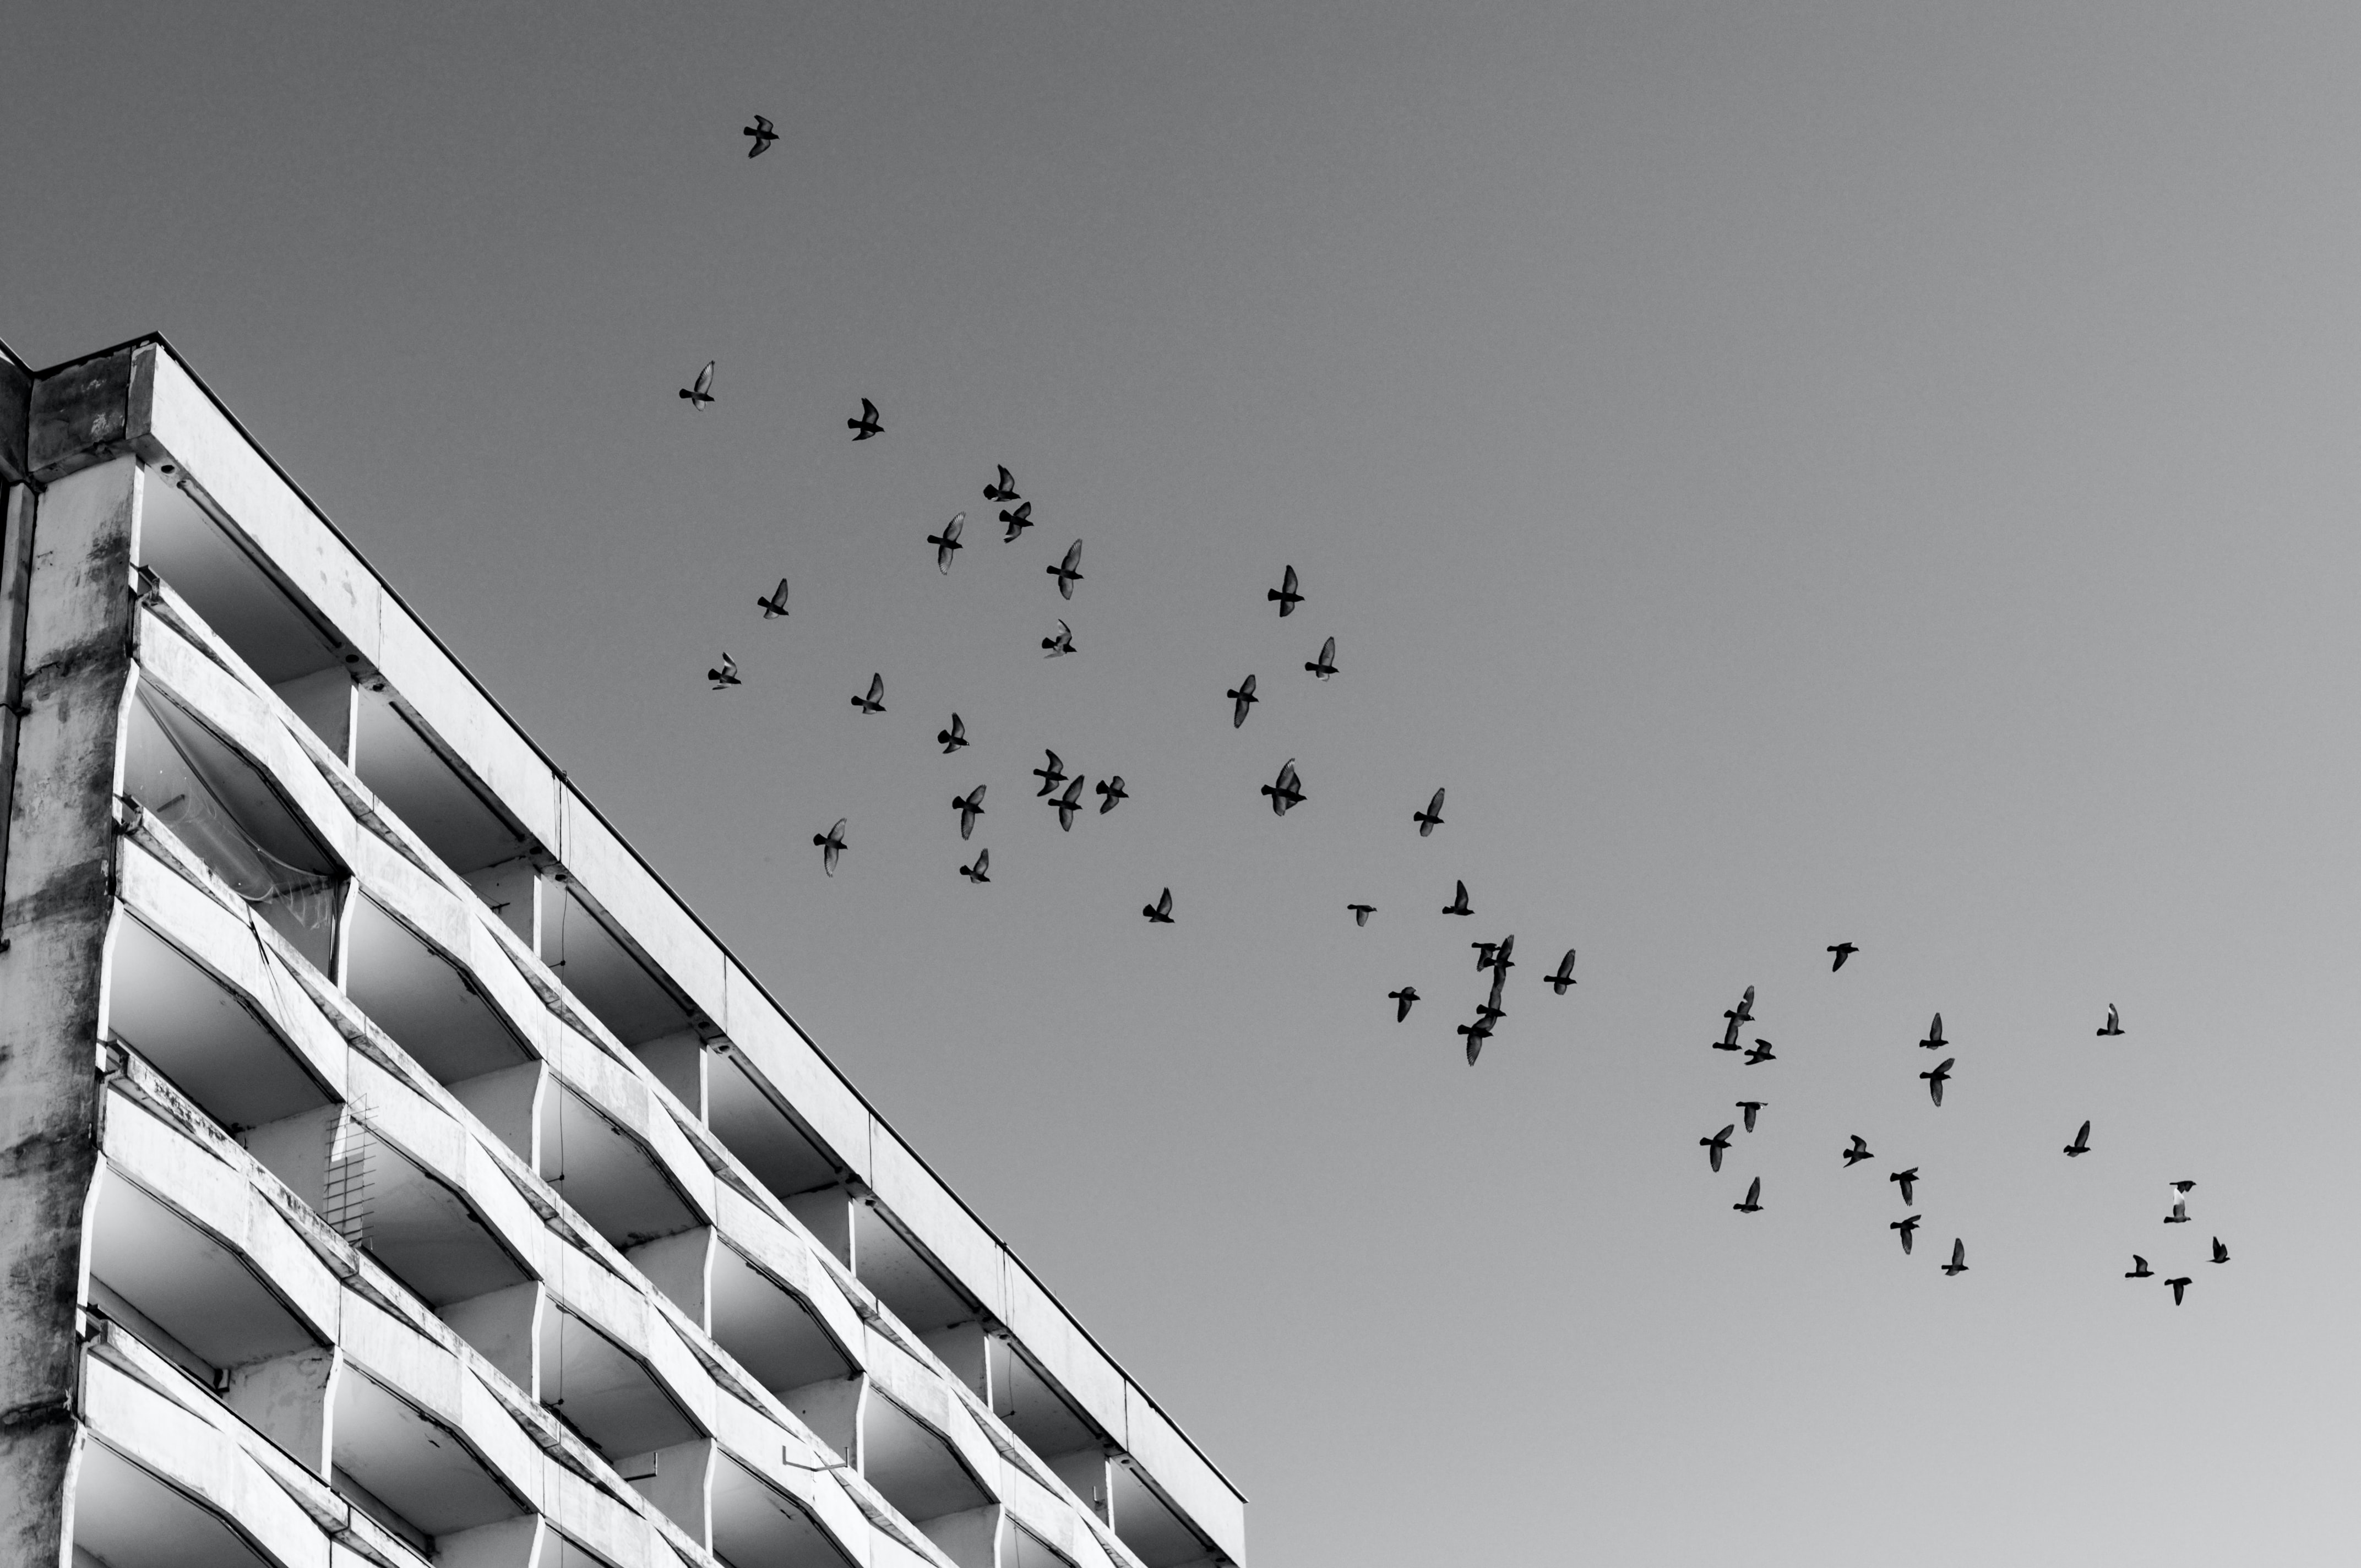 low-angle and grayscale photography of birds flying over building